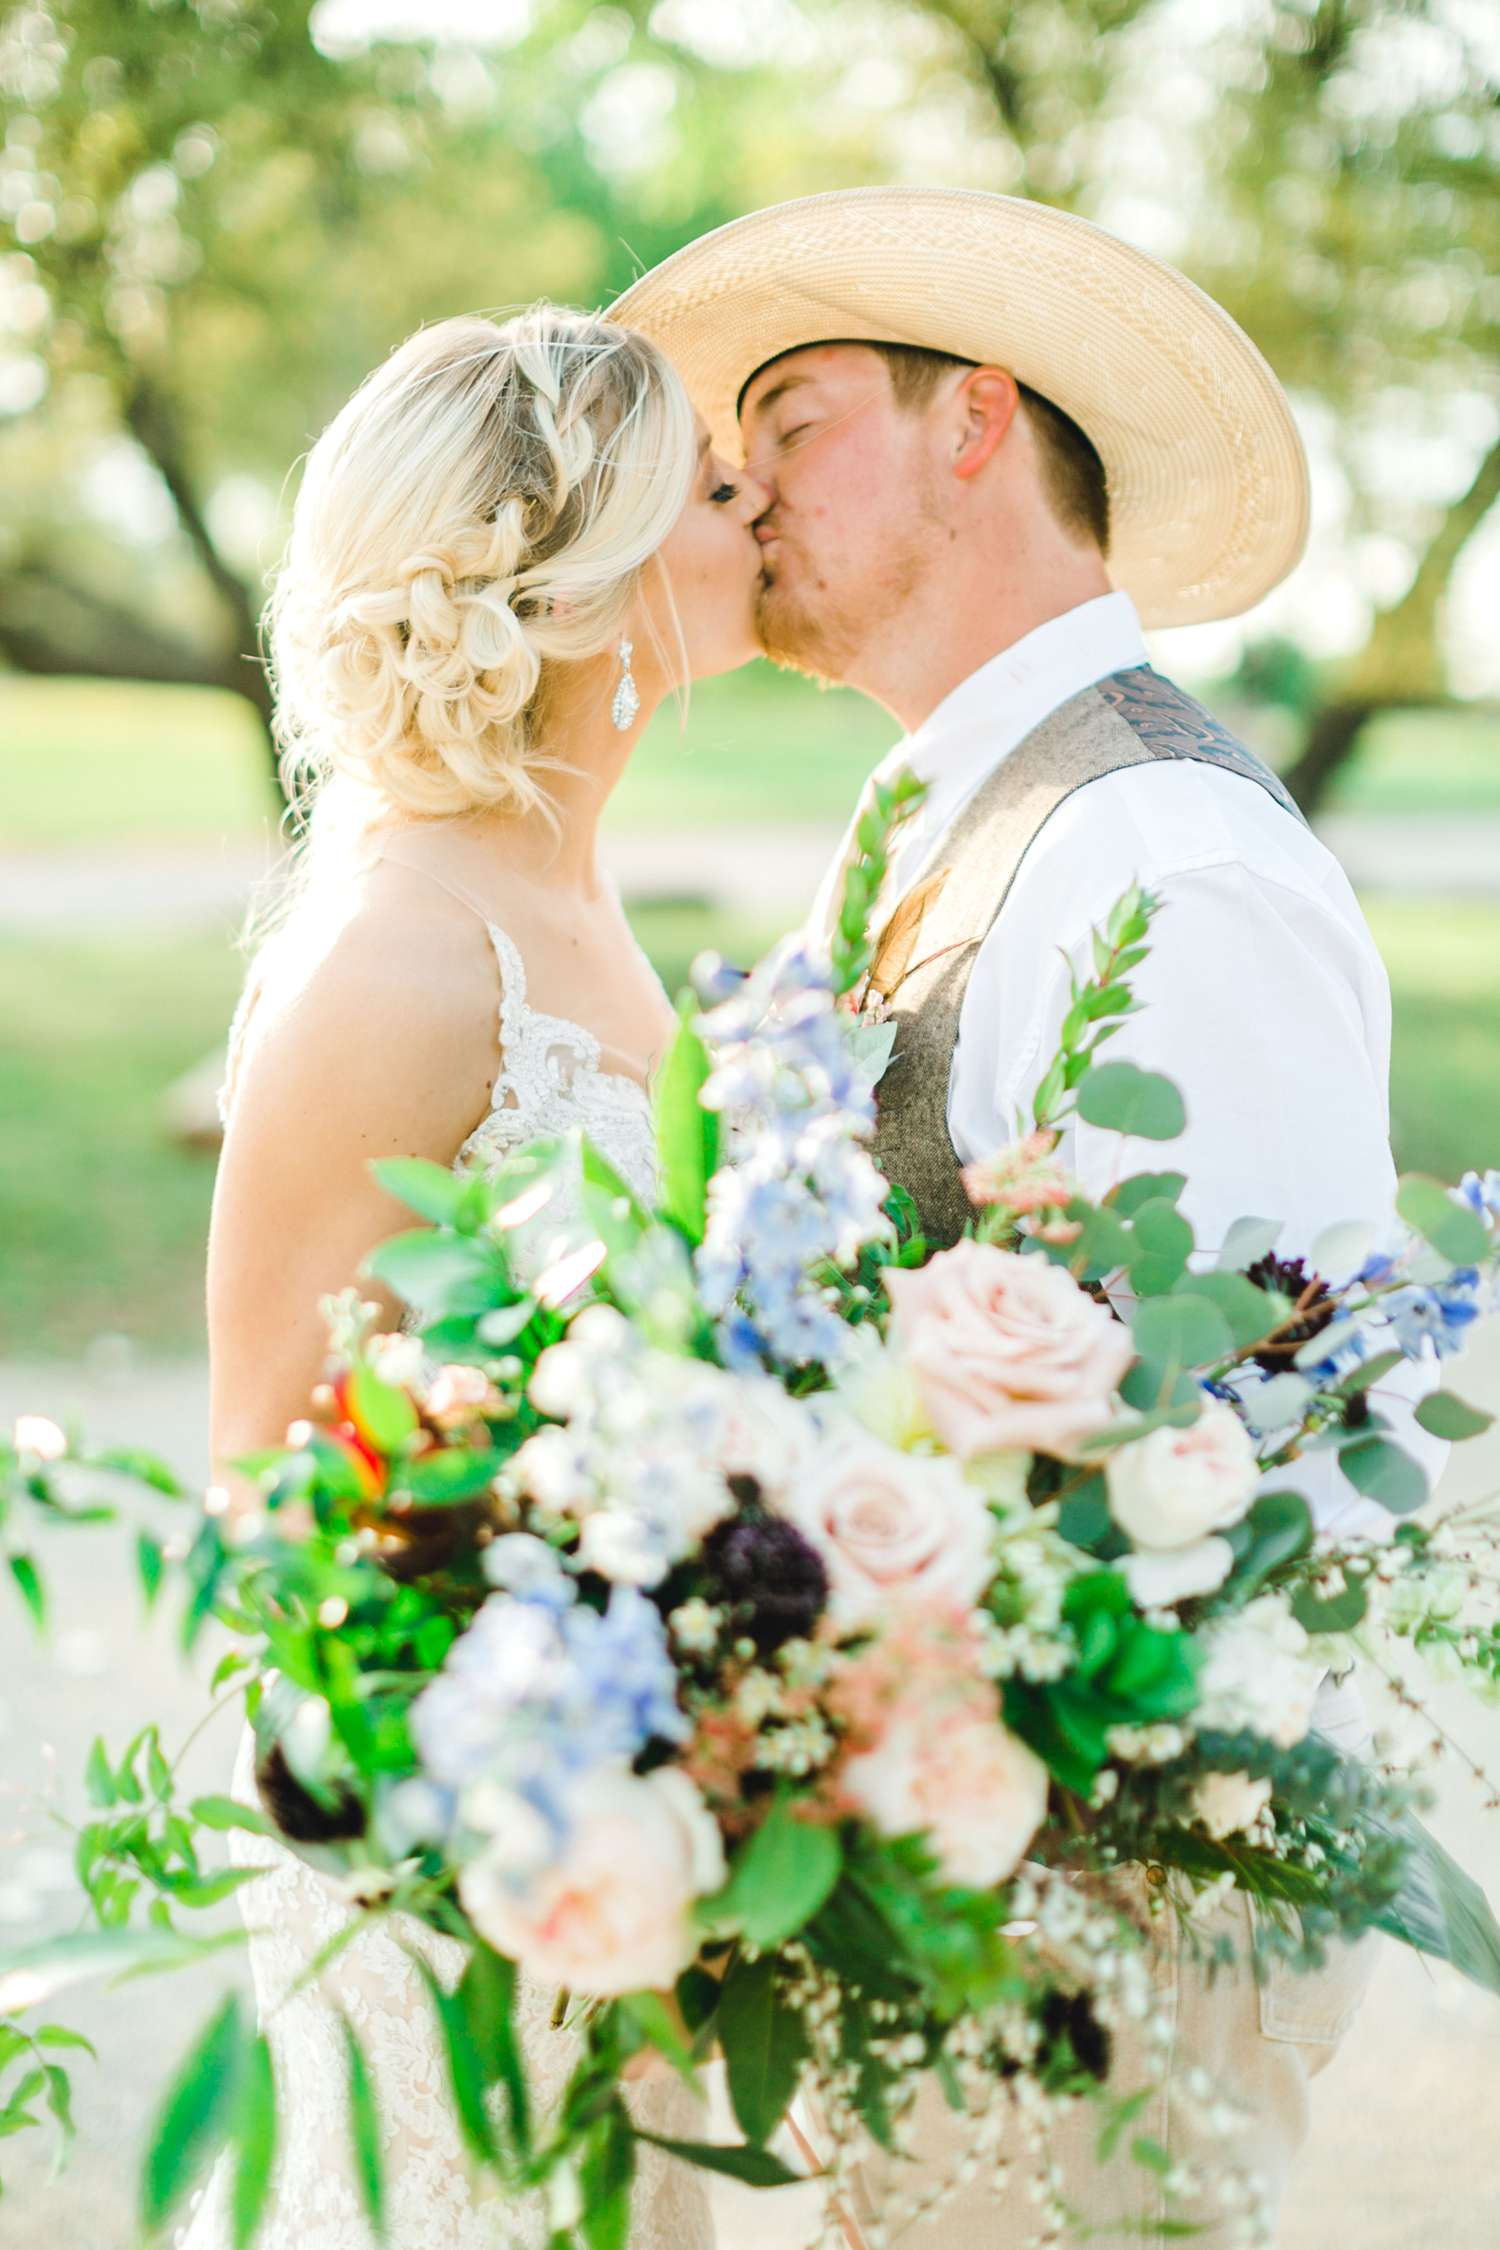 SARAH+TREVOR+BADGETT+SPARROW+CREEK+GRAHAM+TEXAS+ALLEEJ+WEDDINGS_0095.jpg